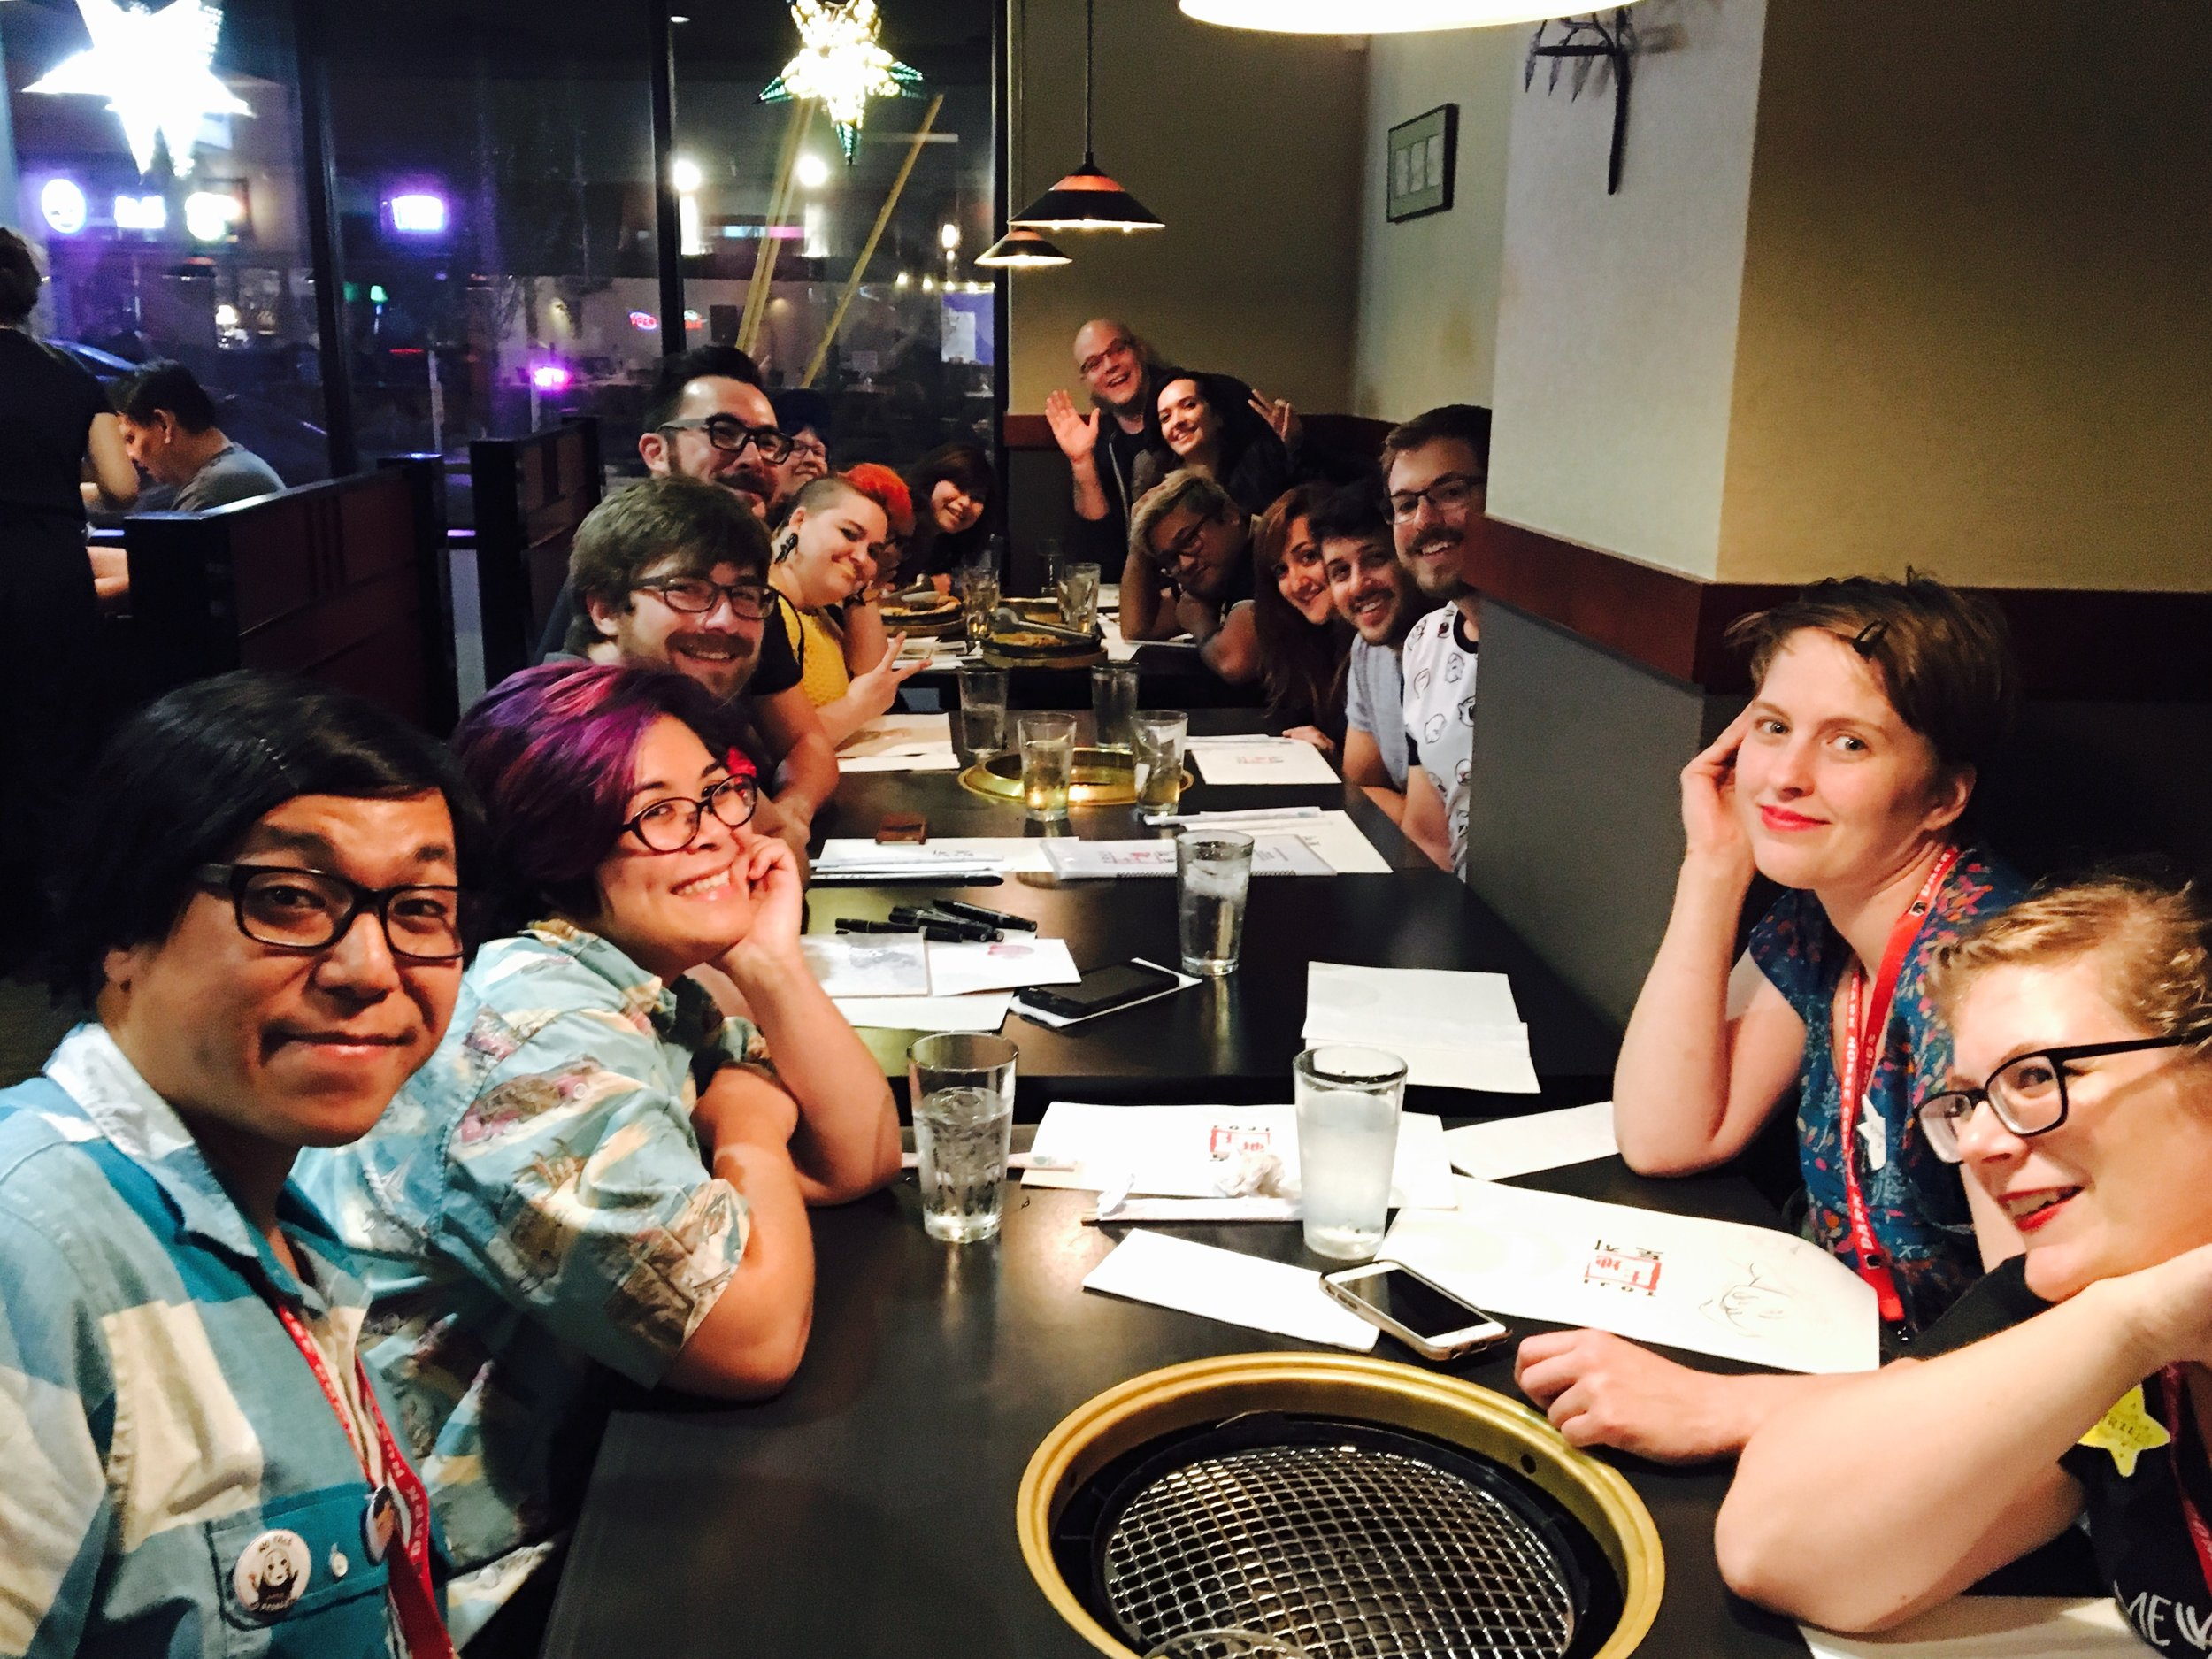 Post-convention dinner group